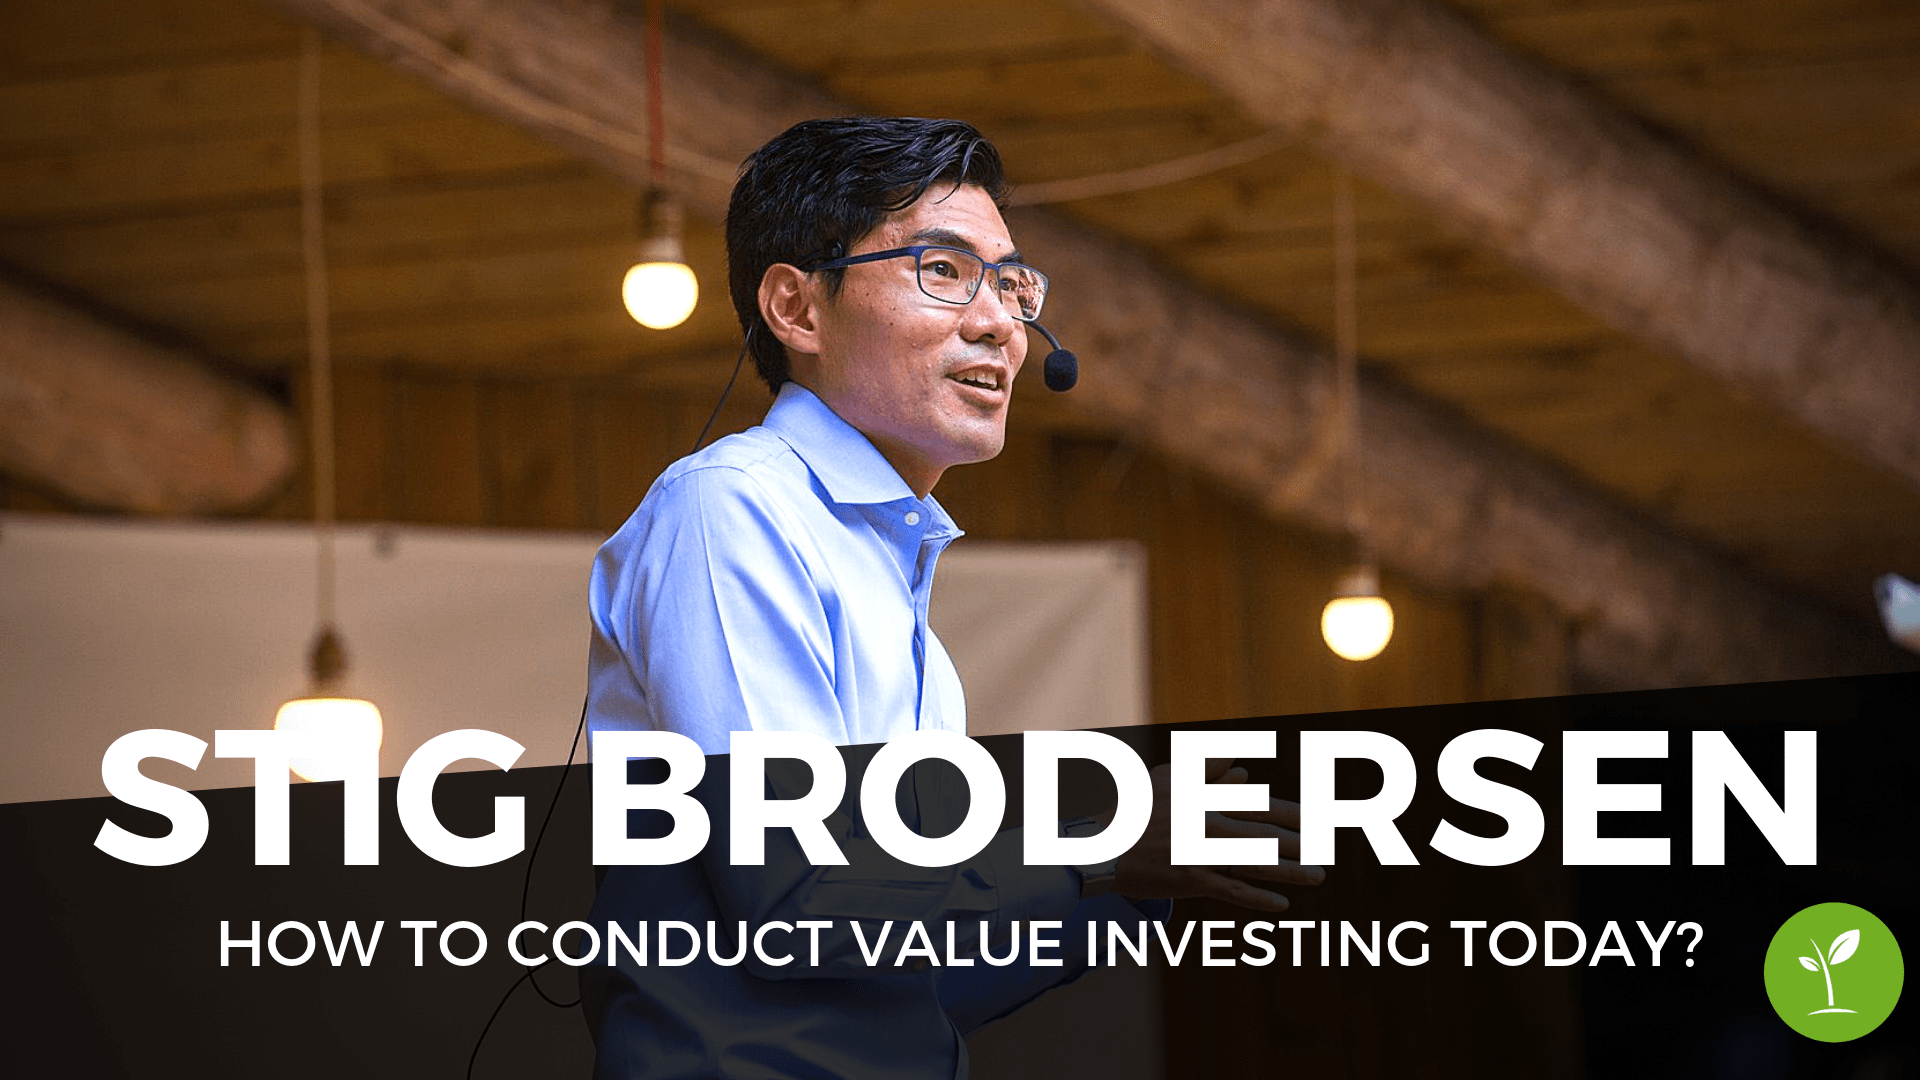 Stig Brodersen - The Intelligent Investor - How to conduct value investing today?